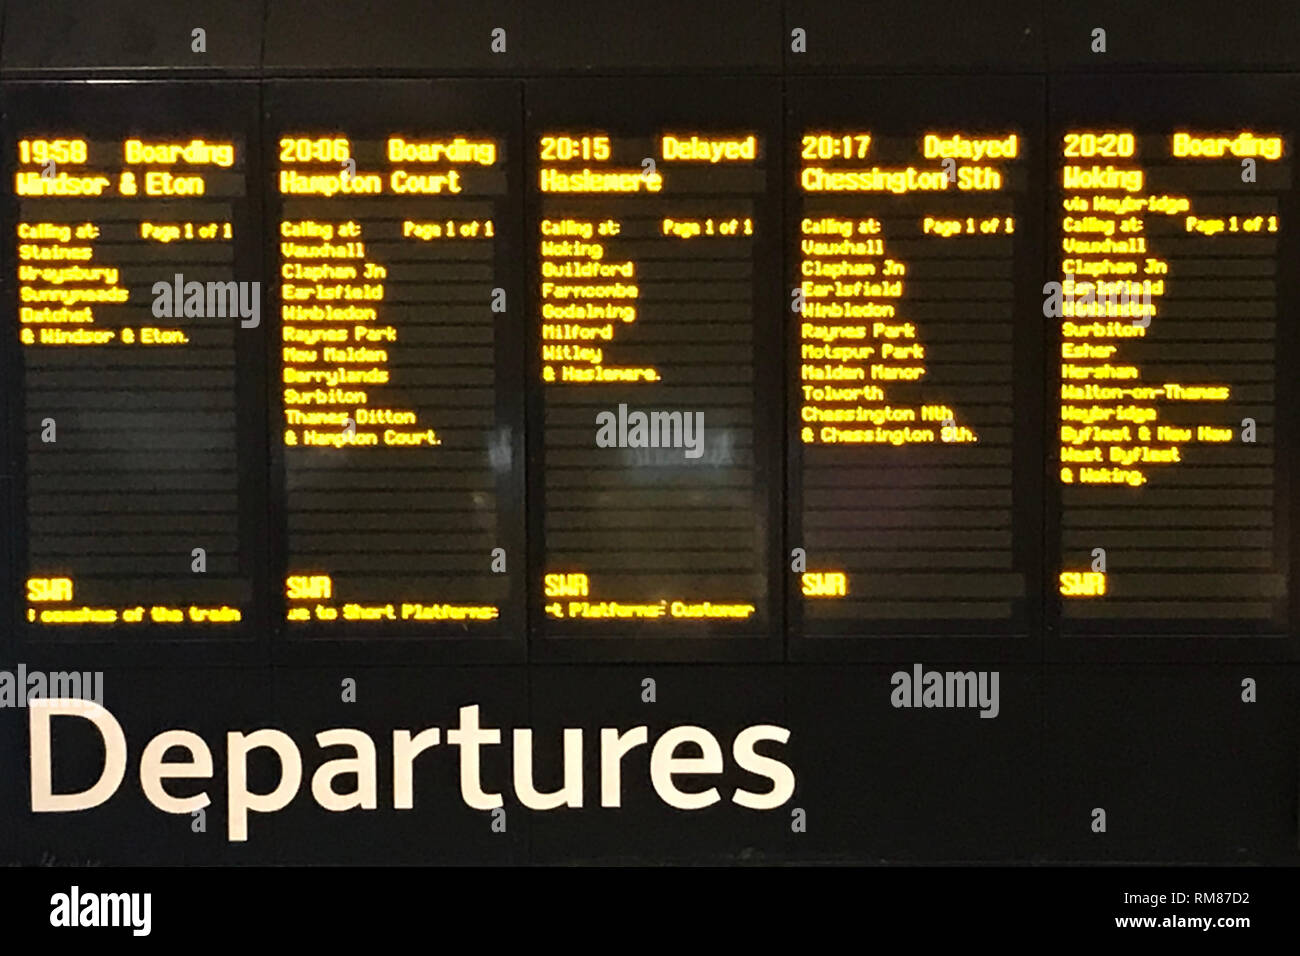 A departure board at Waterloo Station in London, after trains were brought to a standstill during rush hour, resulting in hundreds of commuters being packed into Waterloo Station, following a trespasser getting on to the railway lines. - Stock Image